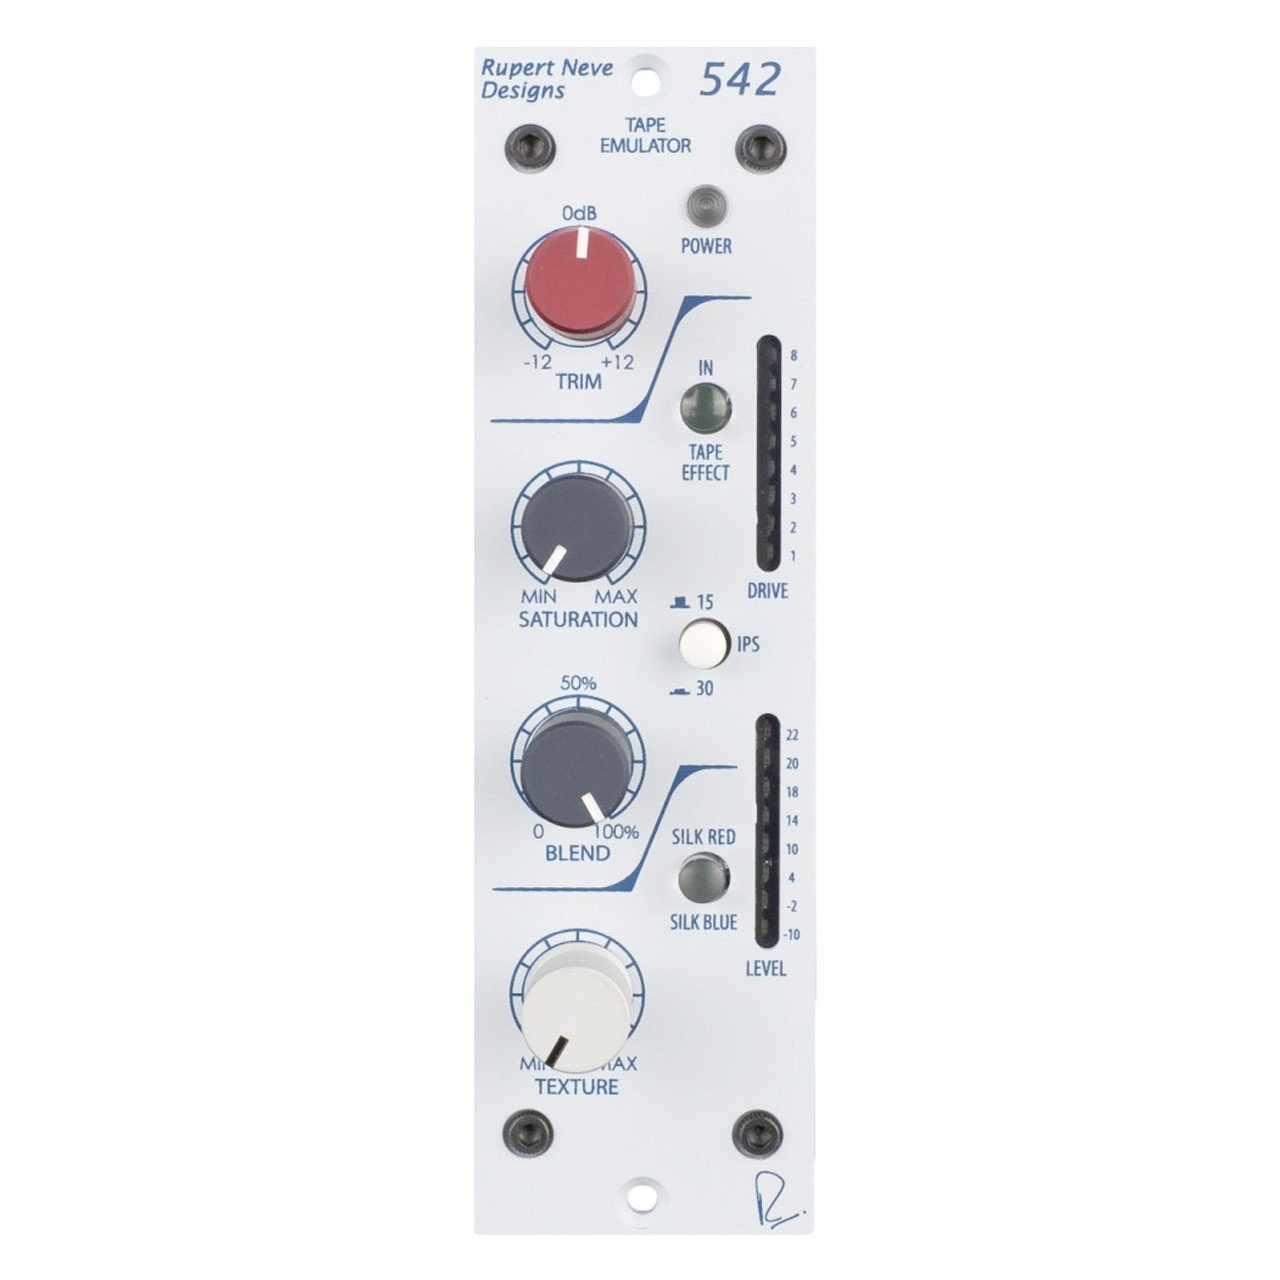 500 Series - Rupert Neve Designs 542 - 500 Series Tape Emulator